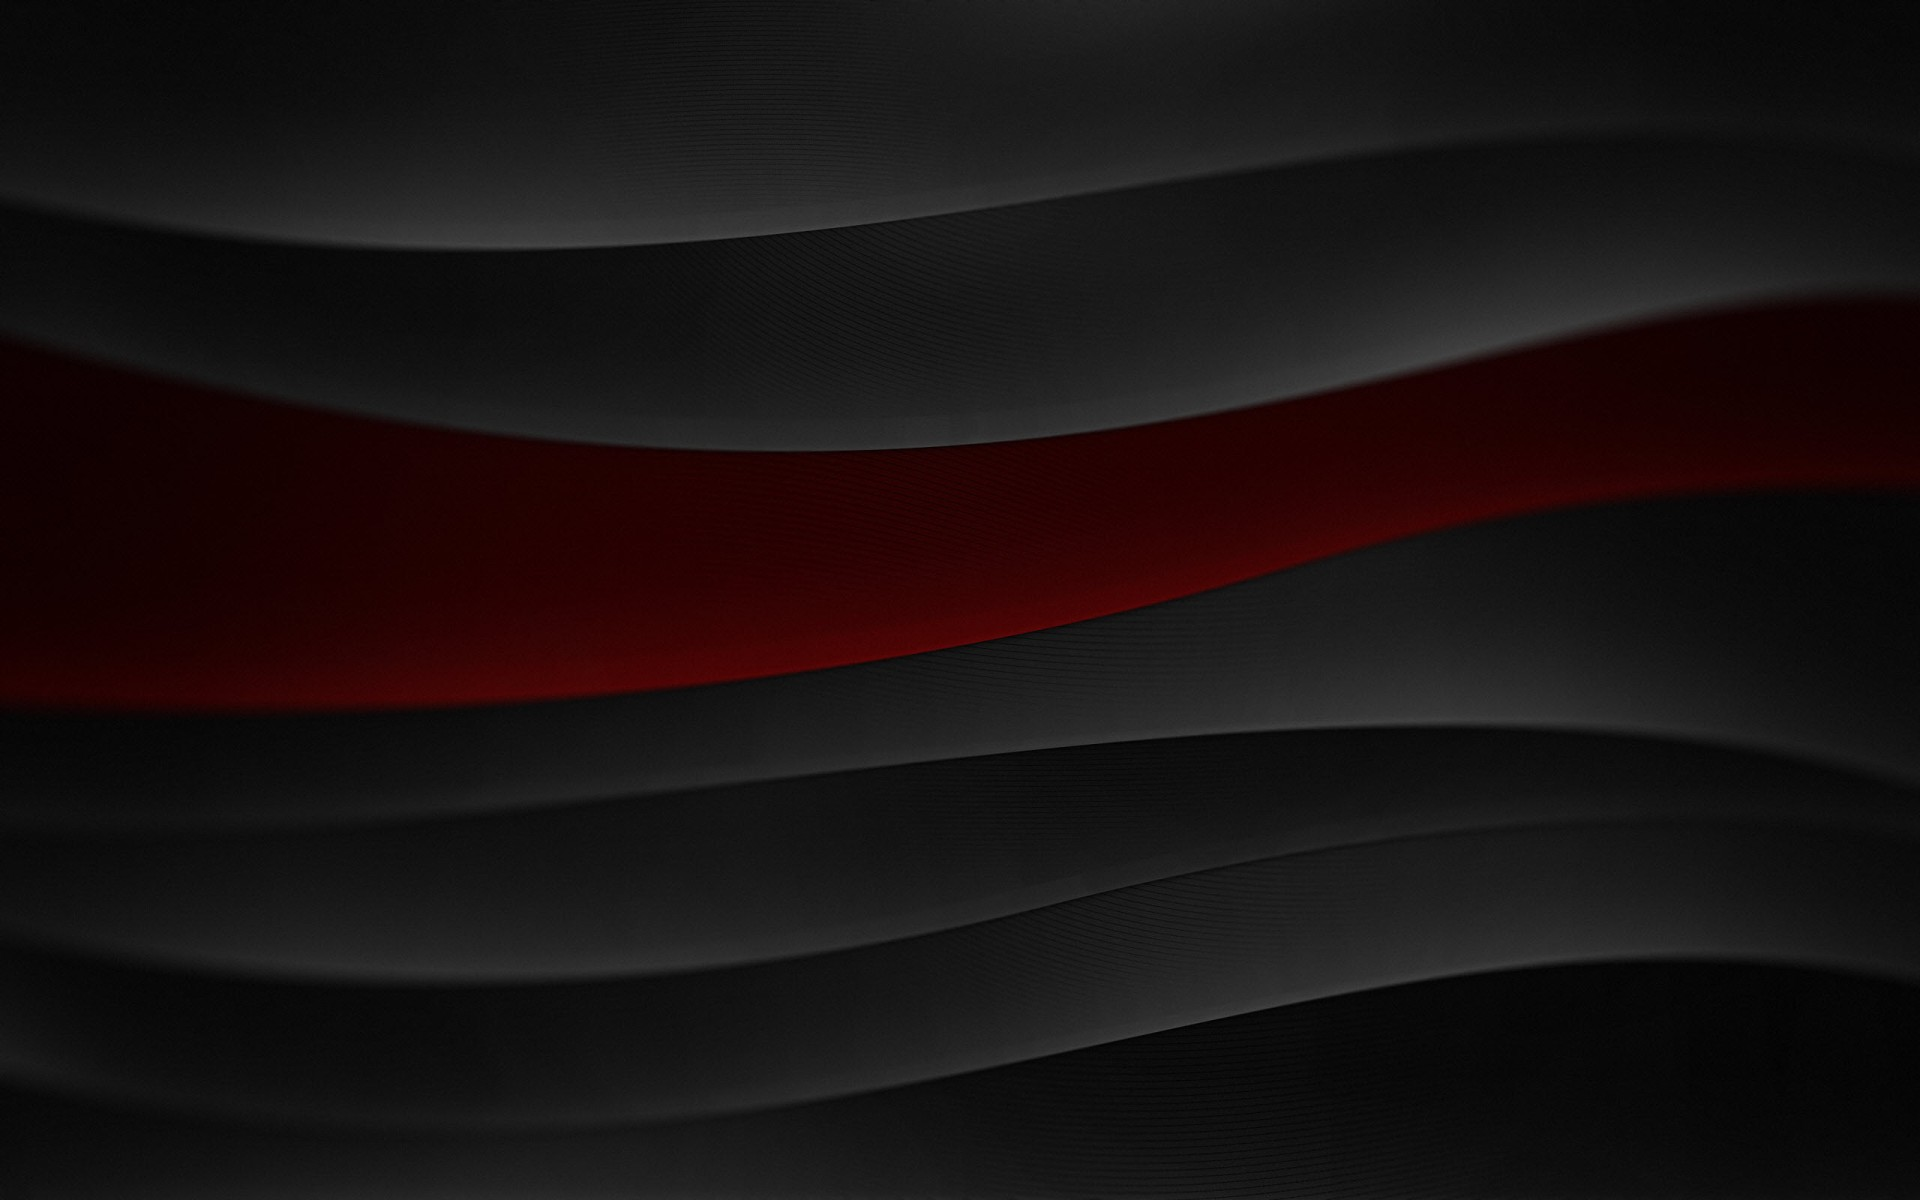 13 awesome black and red wallpapers hd the nology for Black red wallpaper